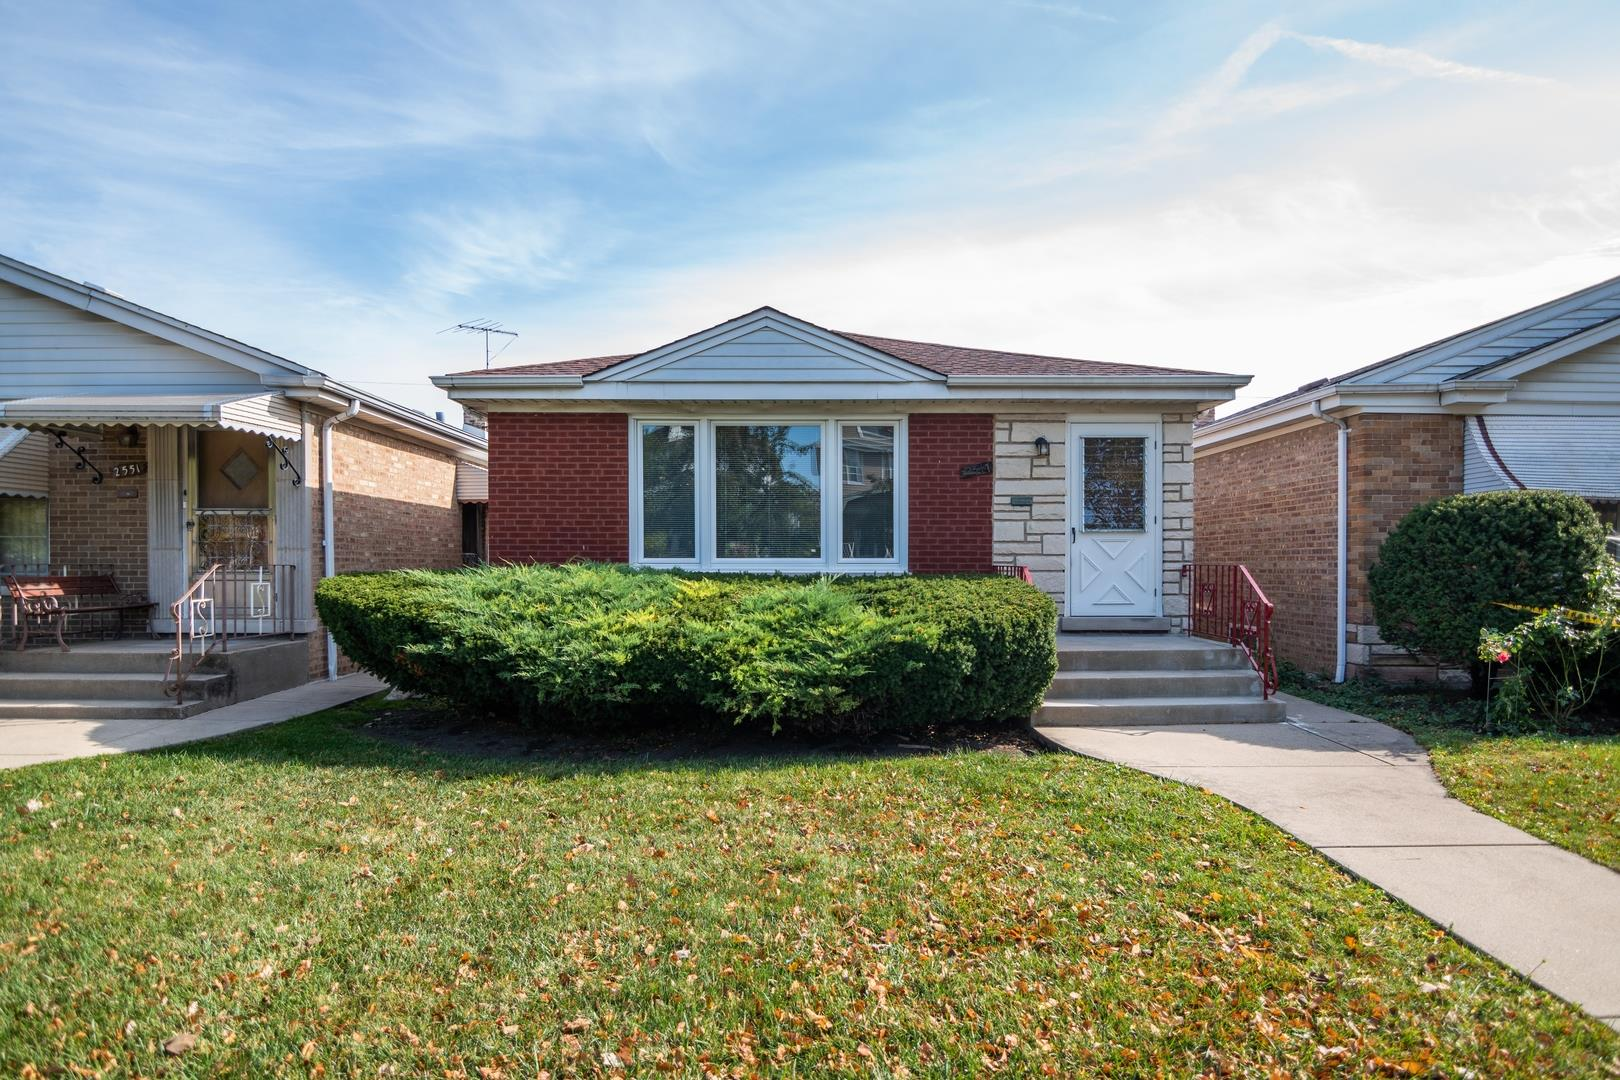 2547 N Menard Avenue, Chicago, IL 60639 - #: 10914549